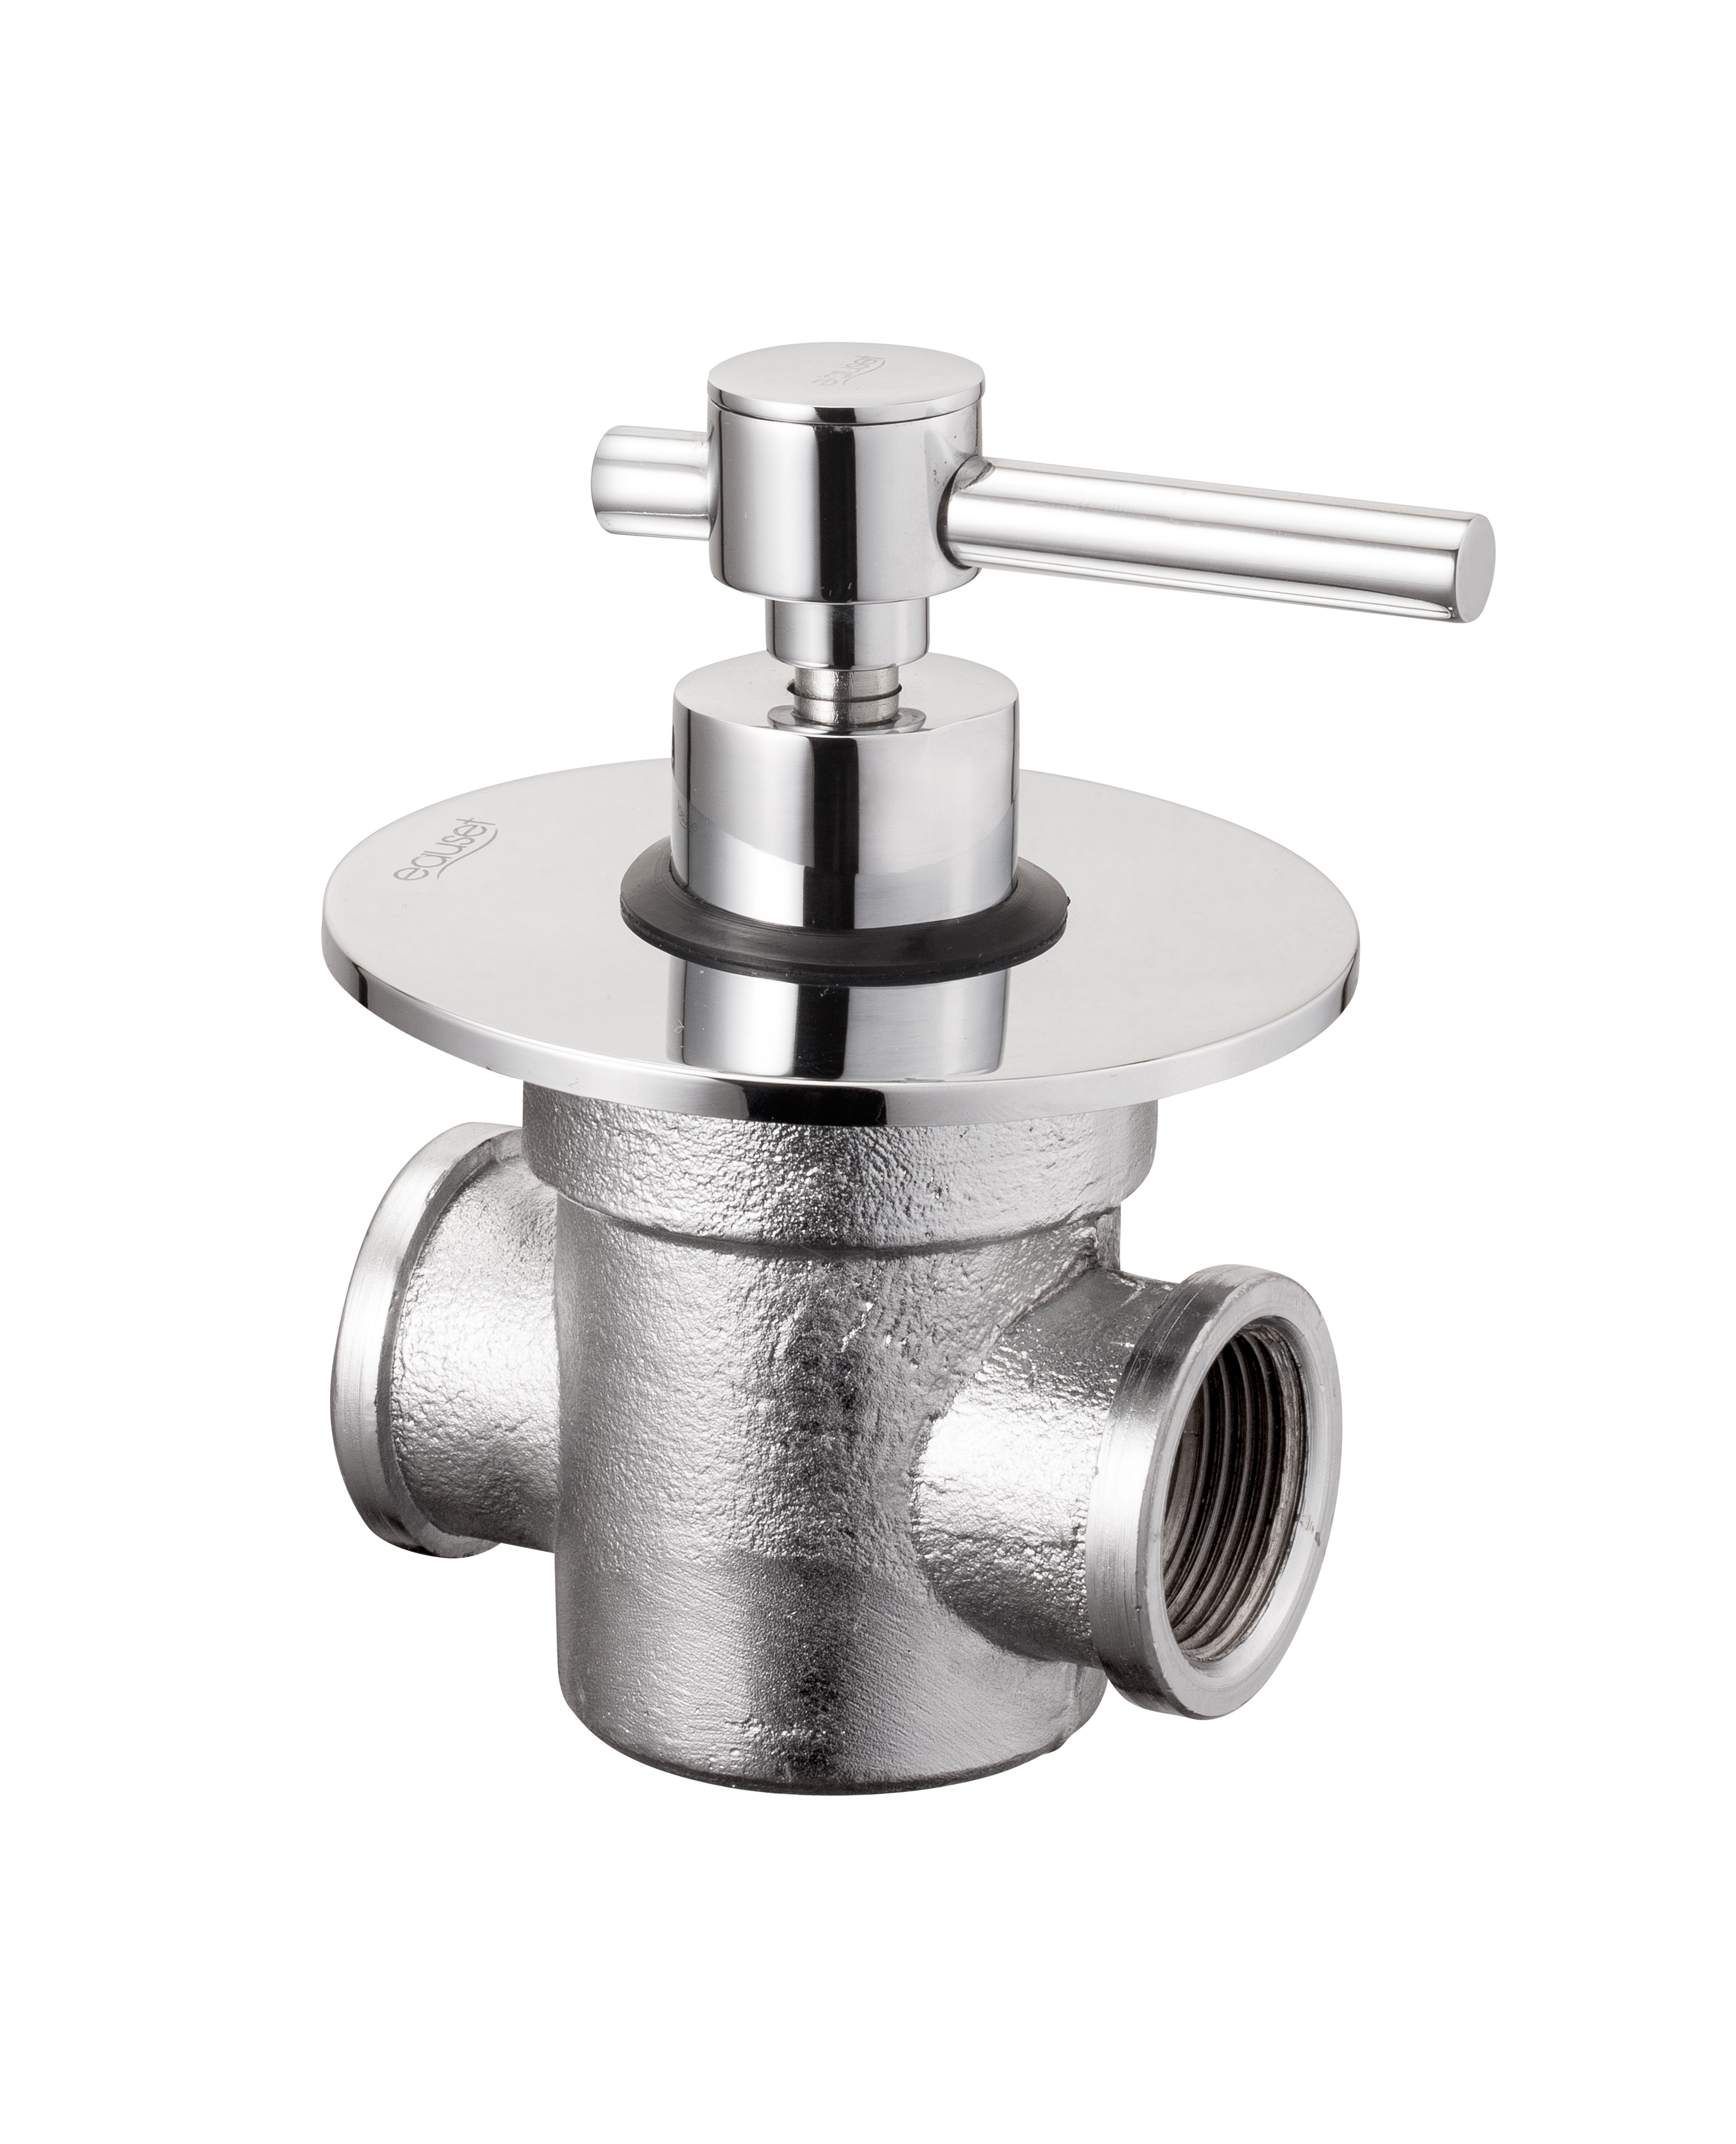 Concealed full Flow stop Cock 25mm with Wall Flange